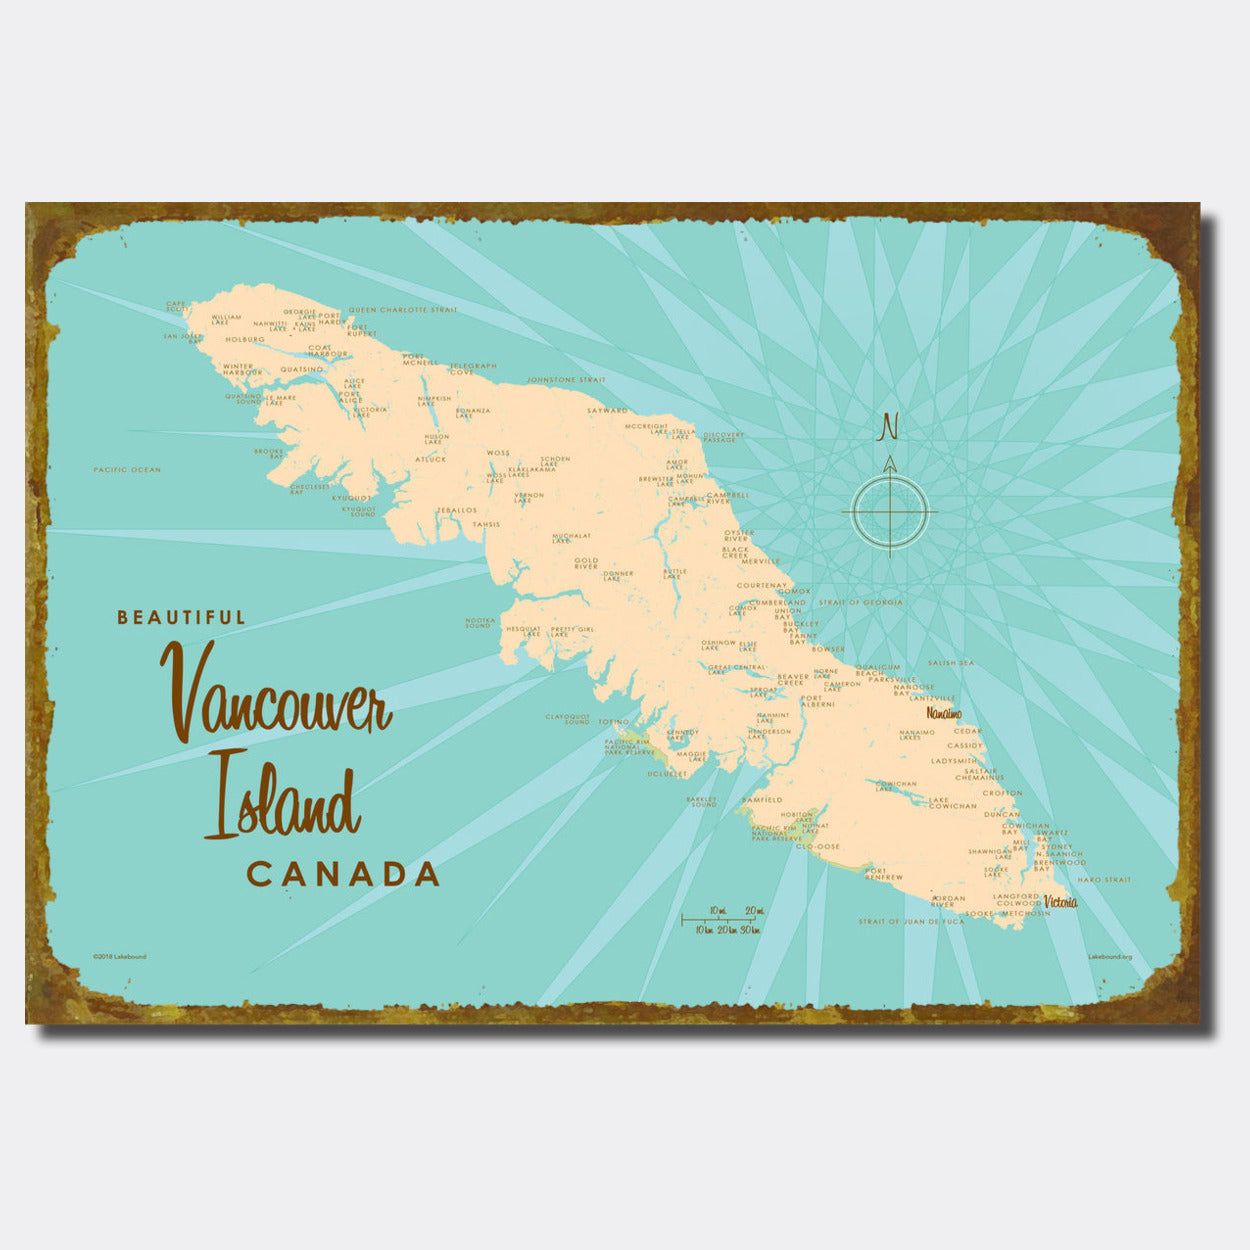 Vancouver Island Canada Sign Map Art Lakebound